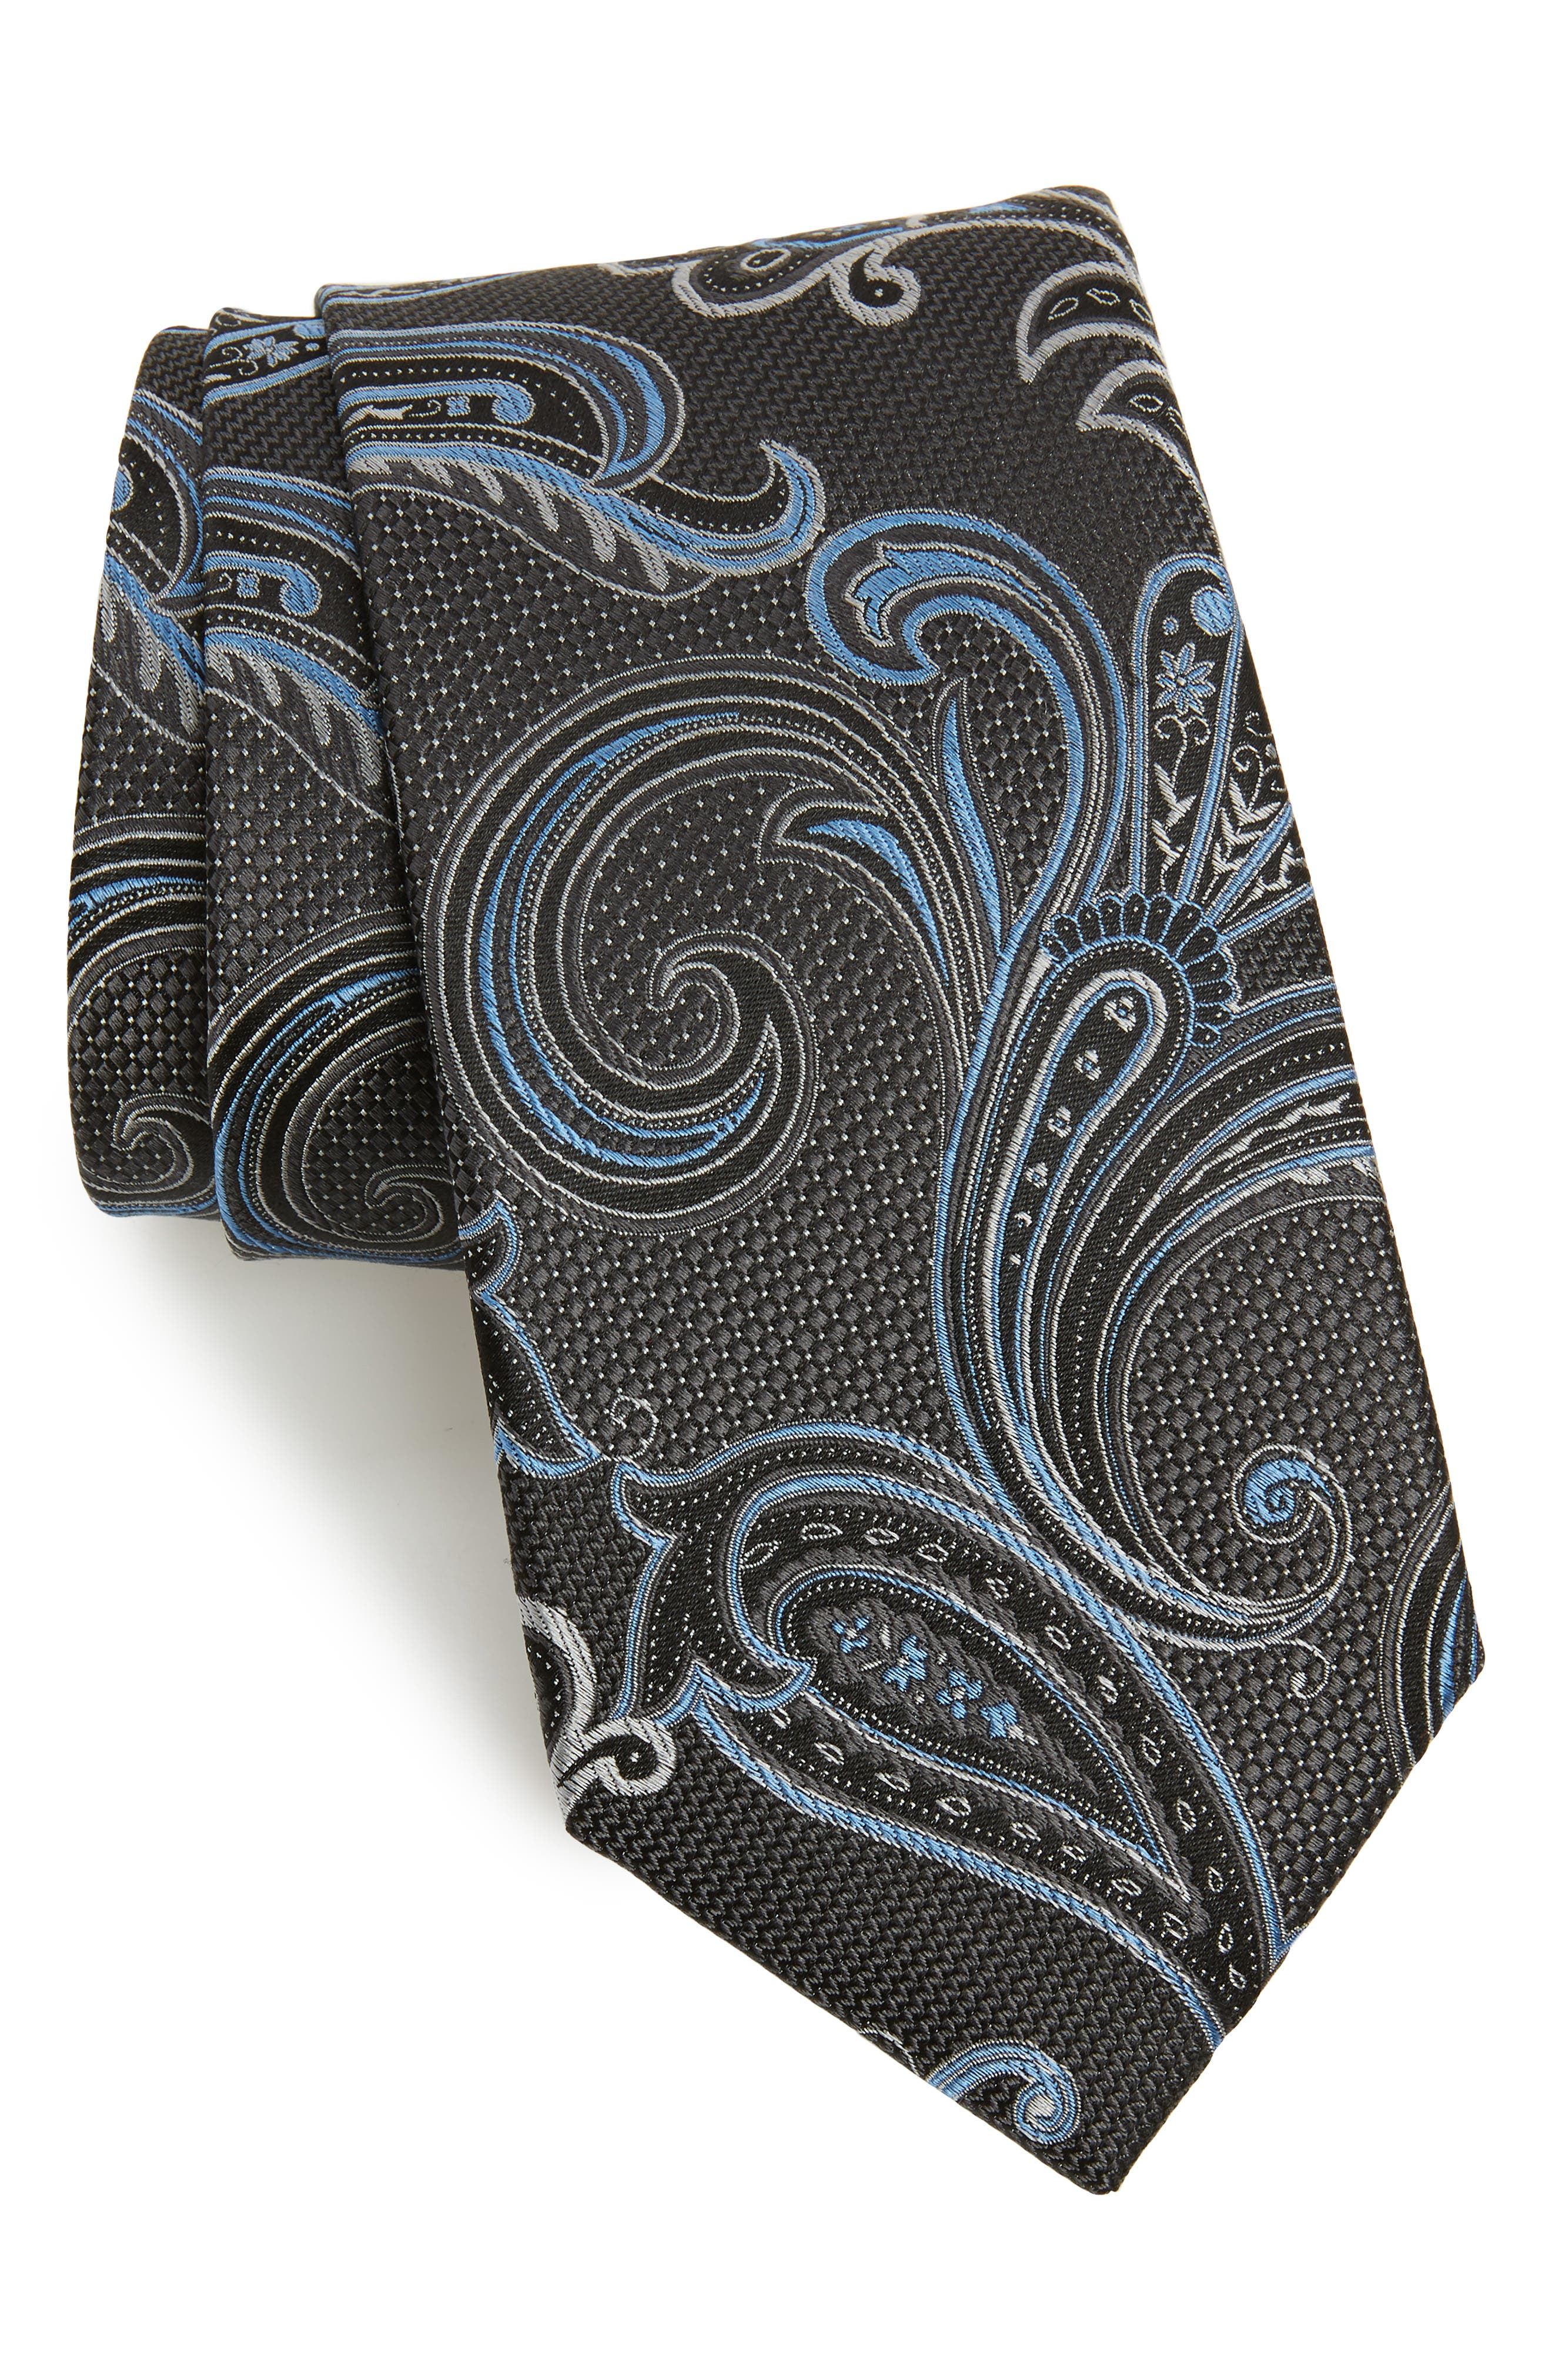 NORDSTROM MEN'S SHOP Bryce Paisley Silk X-Long Tie, Main, color, CHARCOAL